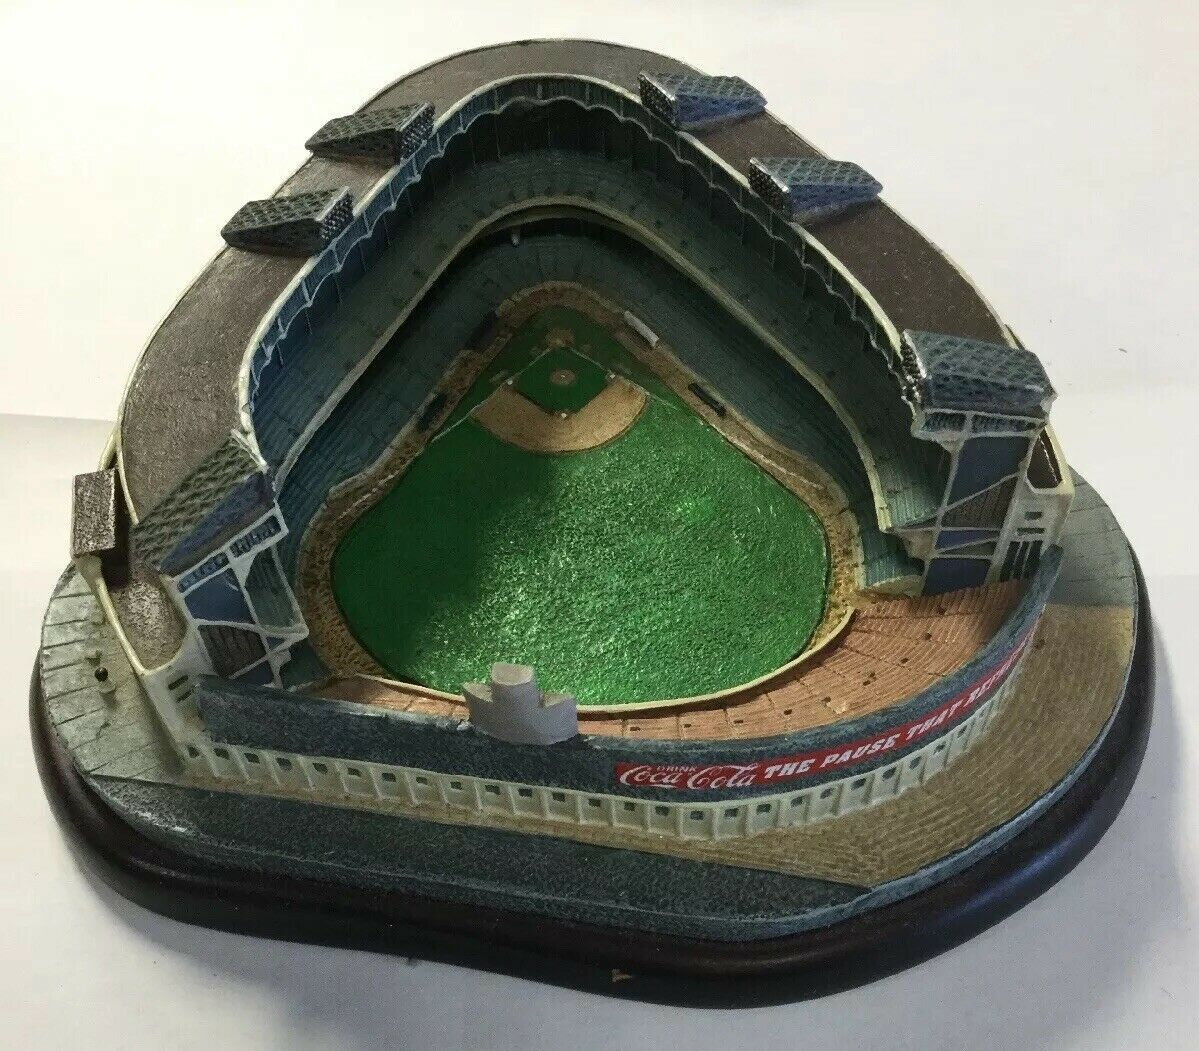 Yankee Stadium Home Of The New York Yankees Cooperstown Collection Danbury Mint